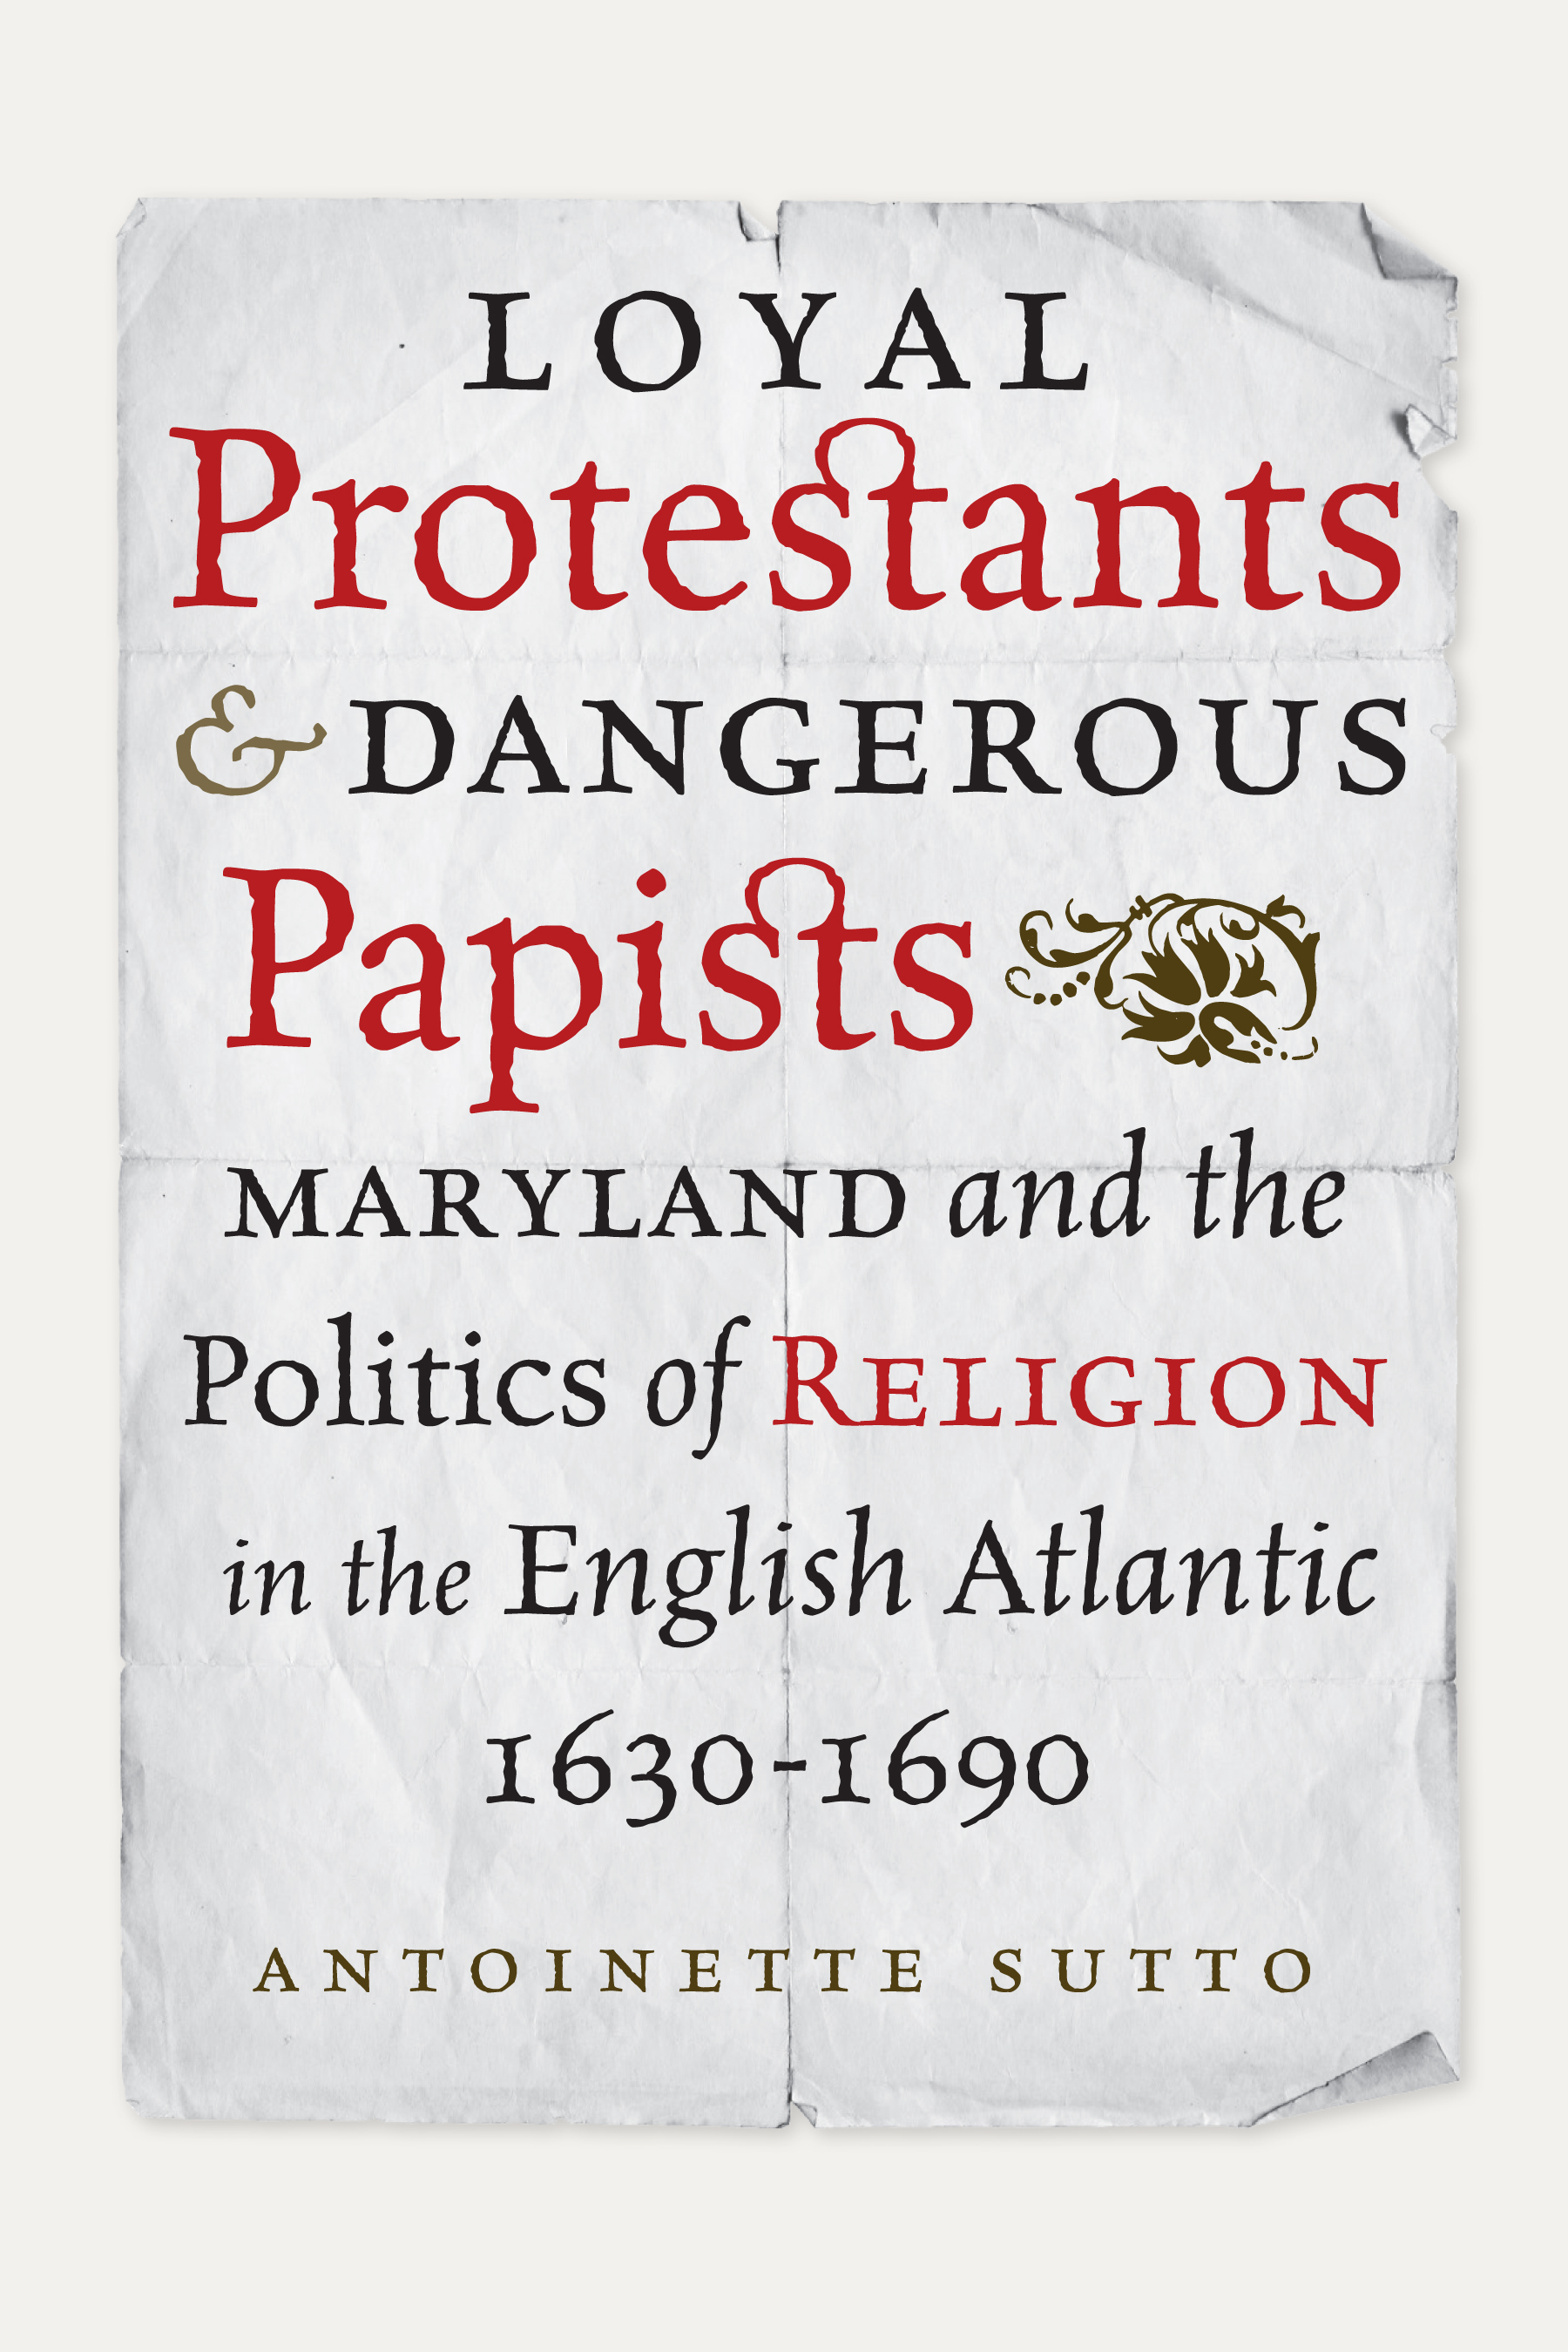 Loyal Protestants and Dangerous Papists